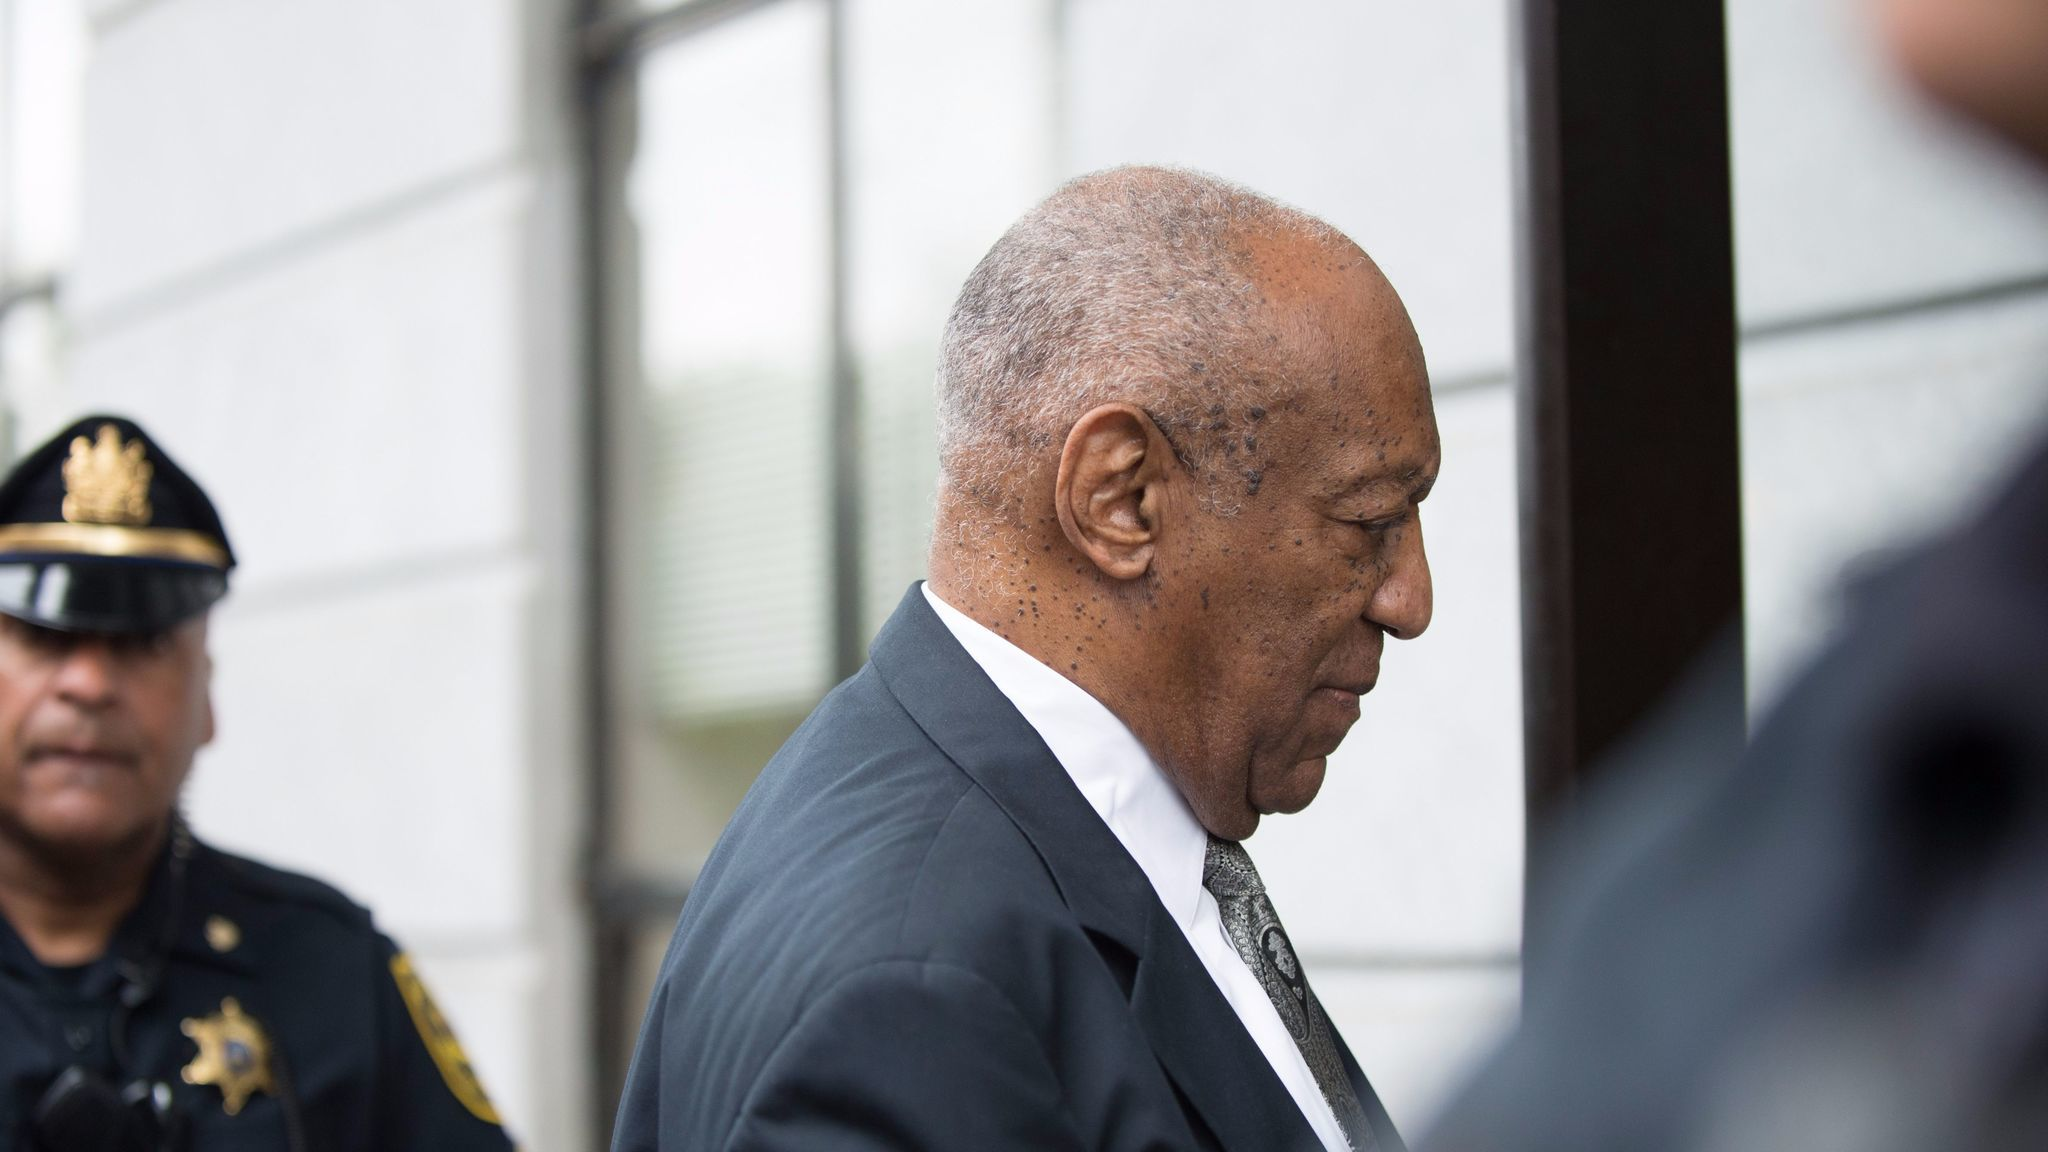 Bill Cosby arrives at the Montgomery County Courthouse for a sixth day of jury deliberations in the trial against him.